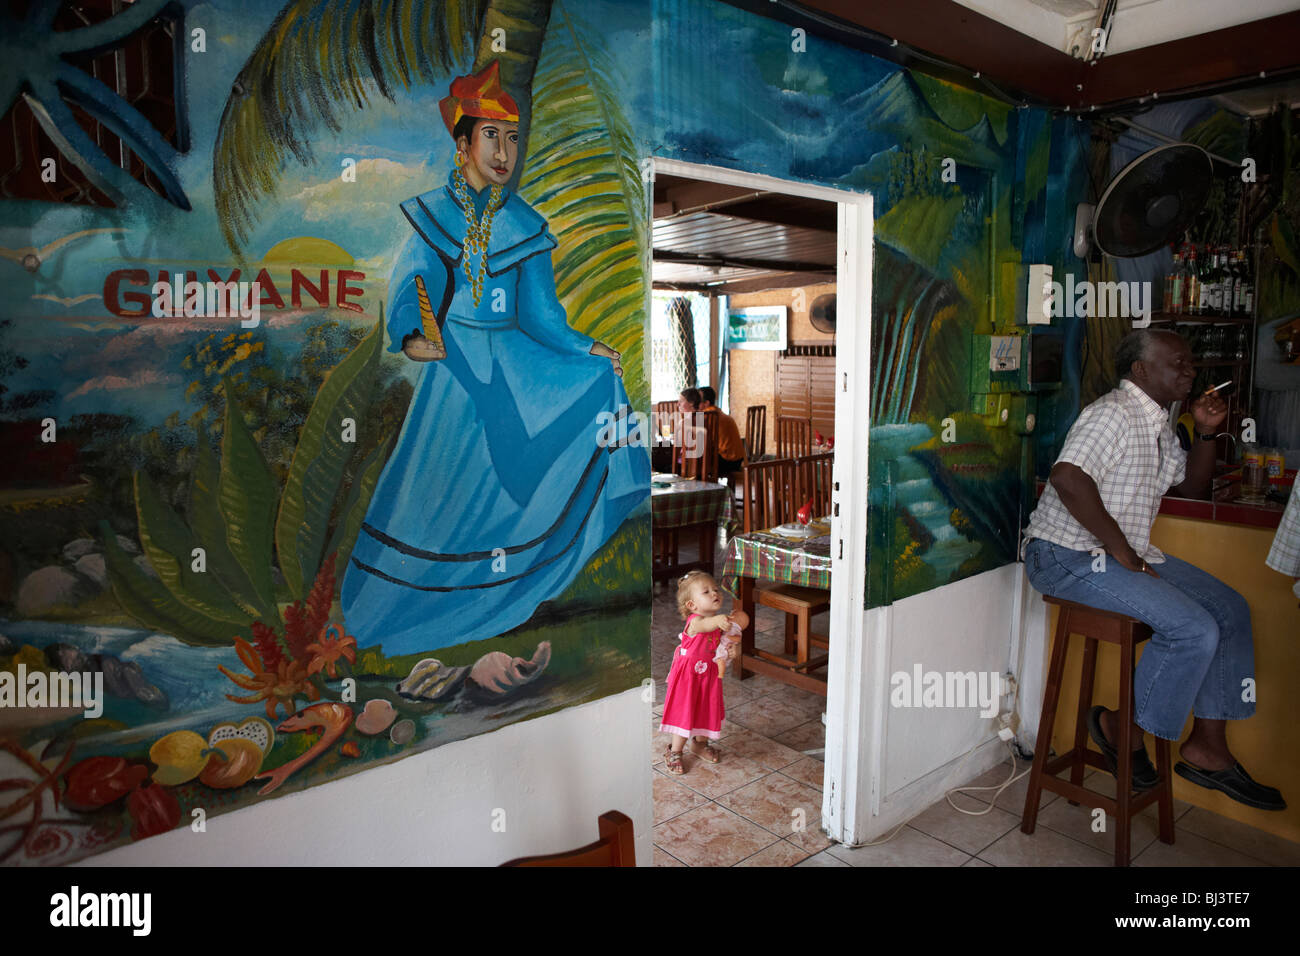 Holding her doll, a young white child wearing a pink dress explores the Délice Restaurant in old Kourou, French - Stock Image